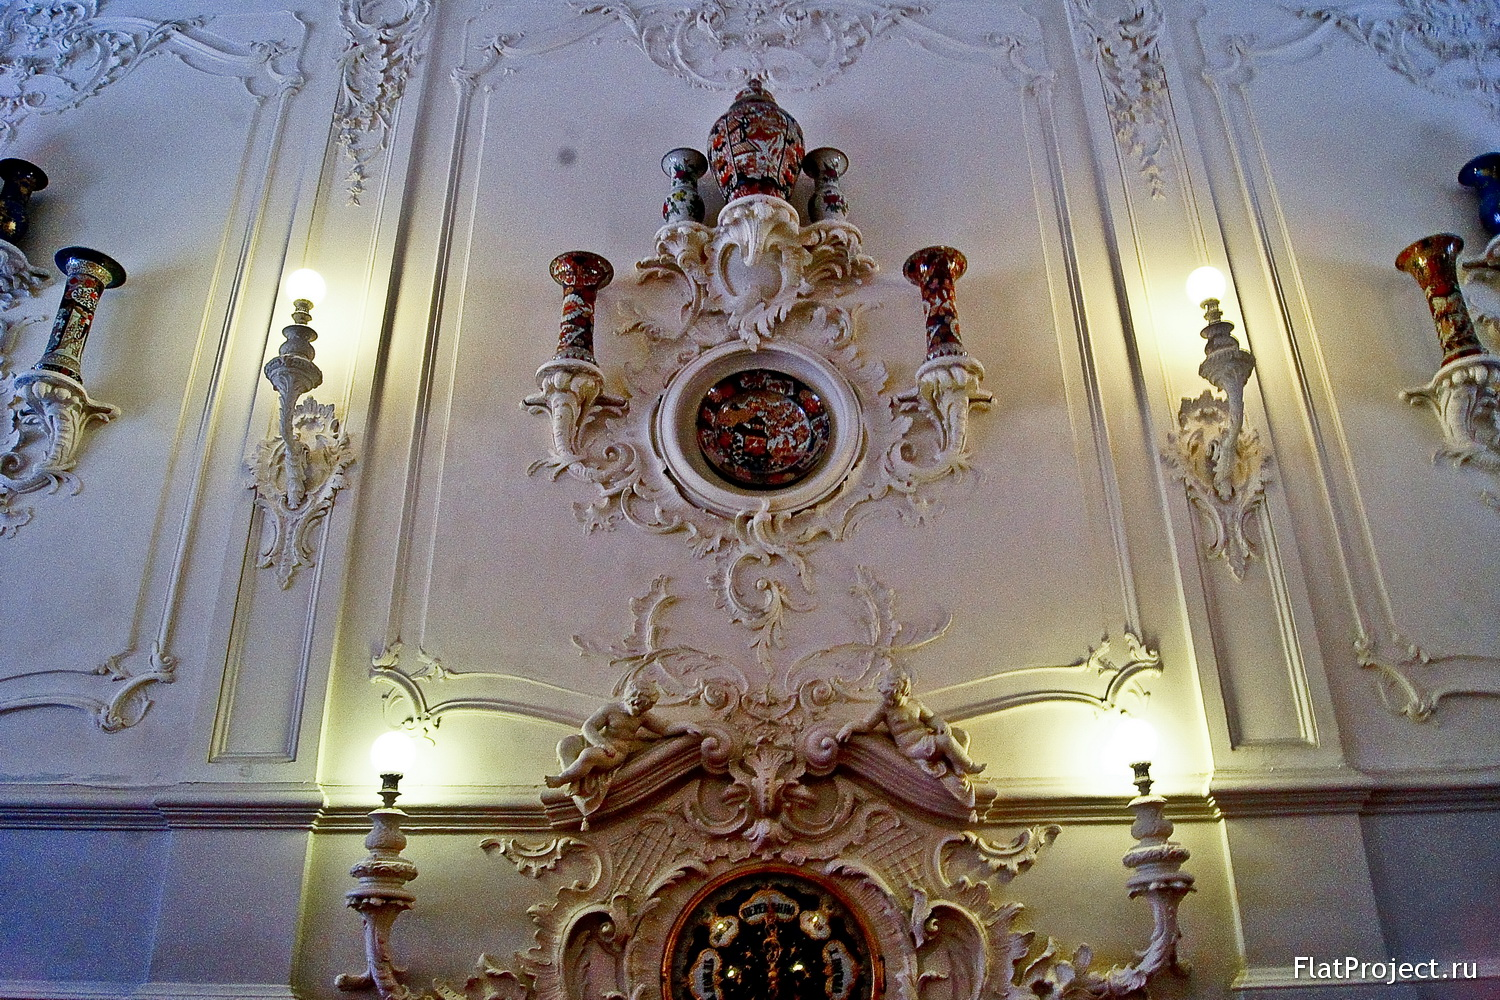 The Catherine Palace interiors – photo 9